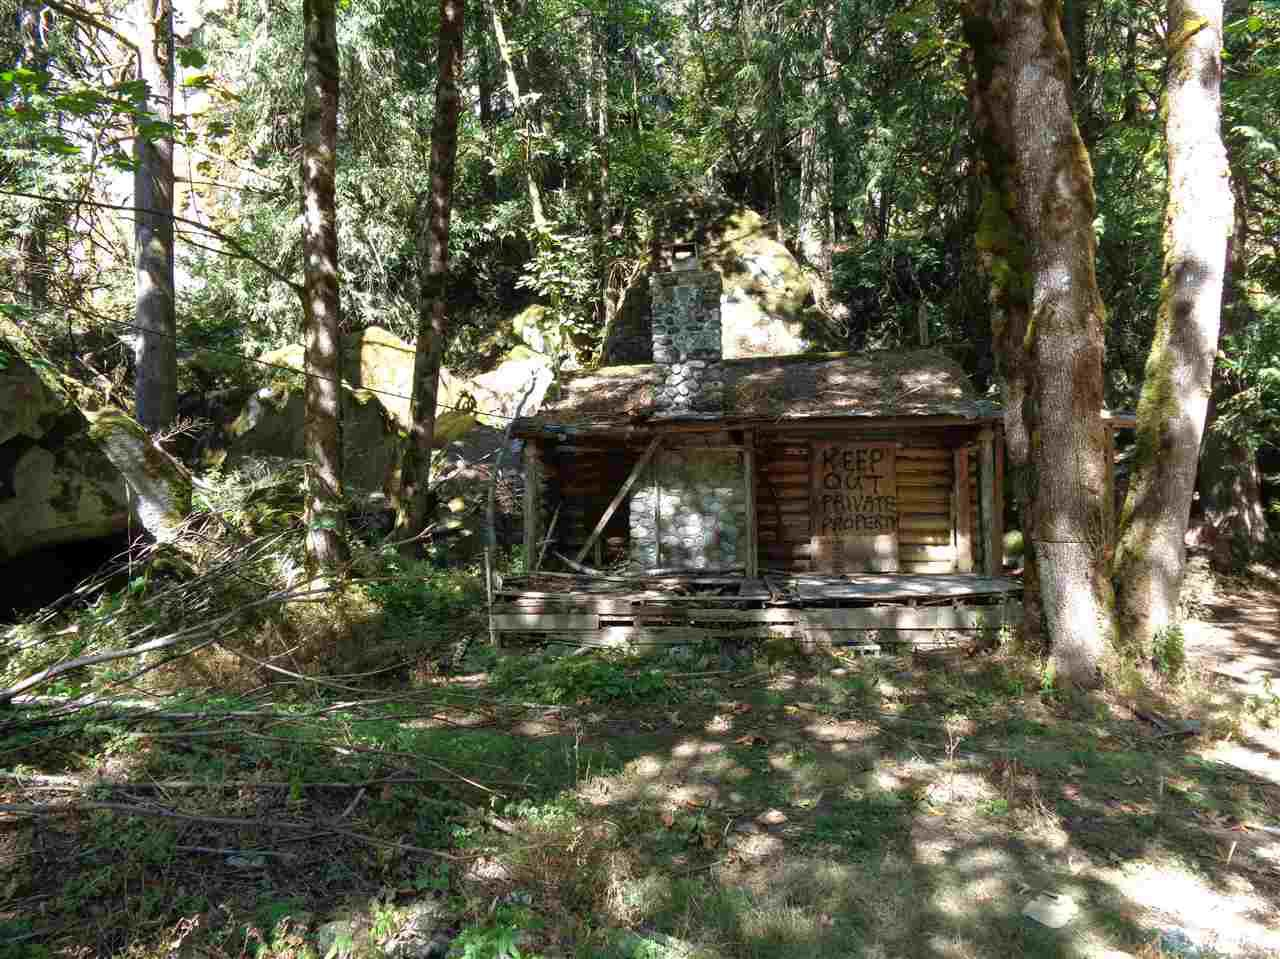 Main Photo: 19903 SILVER SKAGIT Road in Hope: Hope Silver Creek Land for sale : MLS®# R2231721